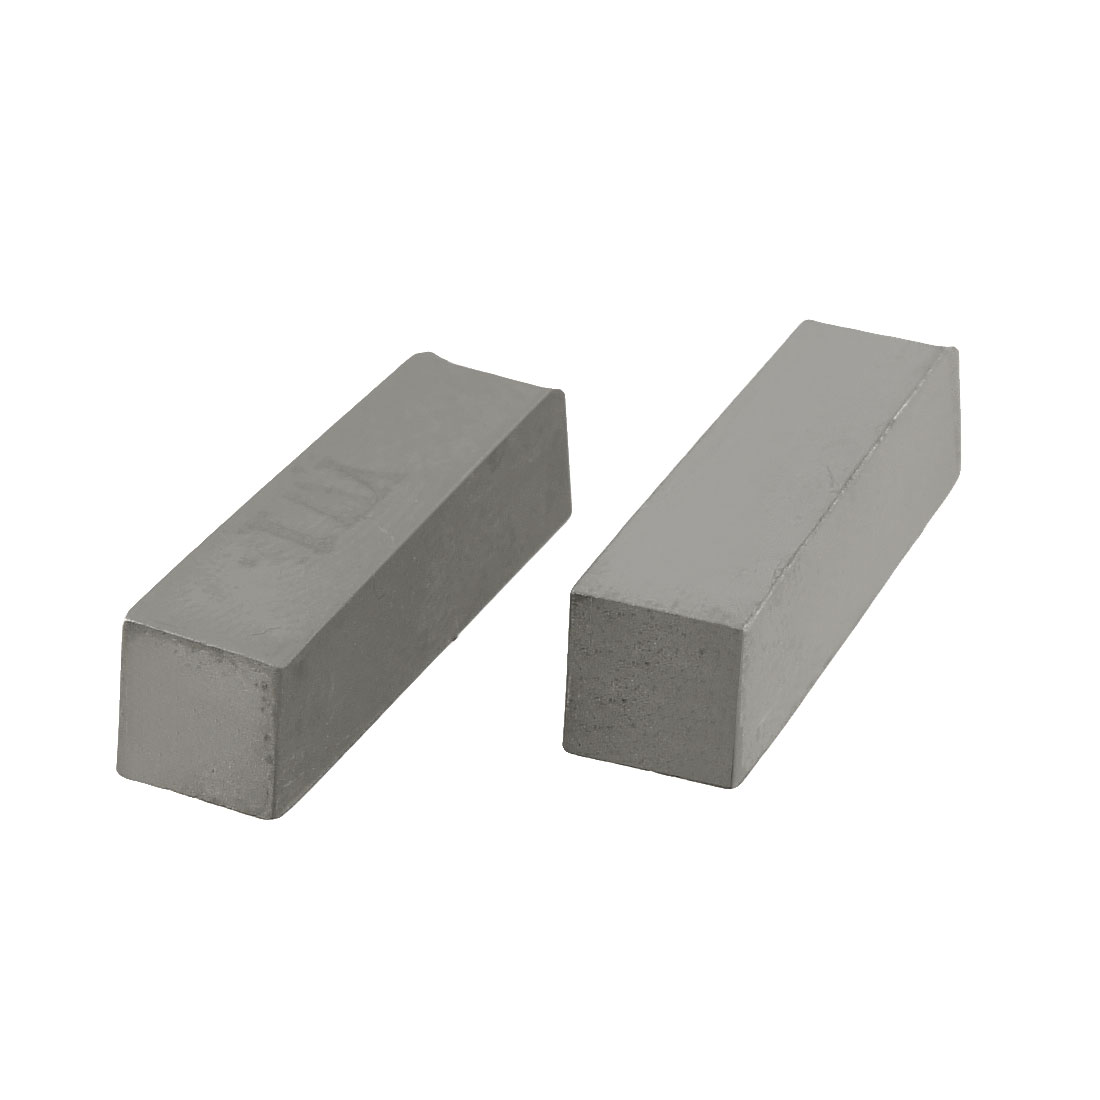 2 Pcs Welding Blade Cemented Carbide Inserts for Stainless Steel Processing